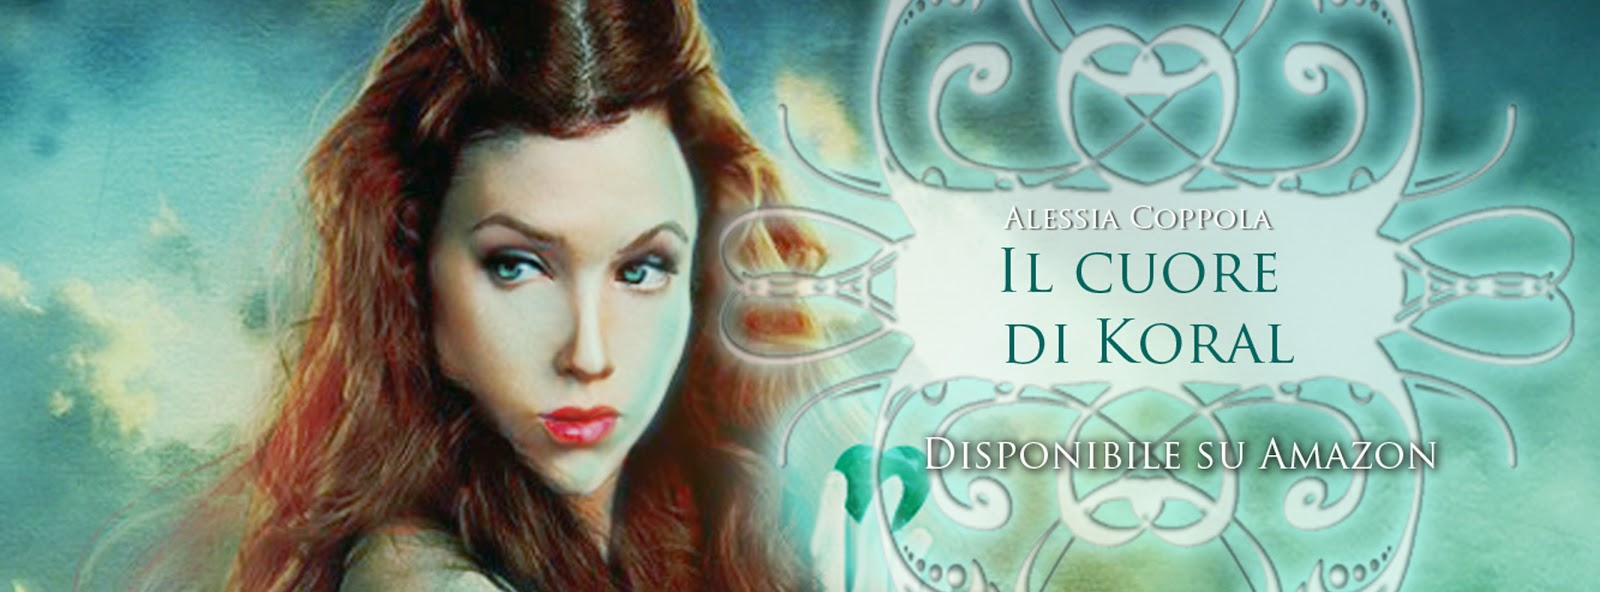 http://www.amazon.it/Il-Cuore-Koral-Alessia-Coppola-ebook/dp/B00L94G2Y4